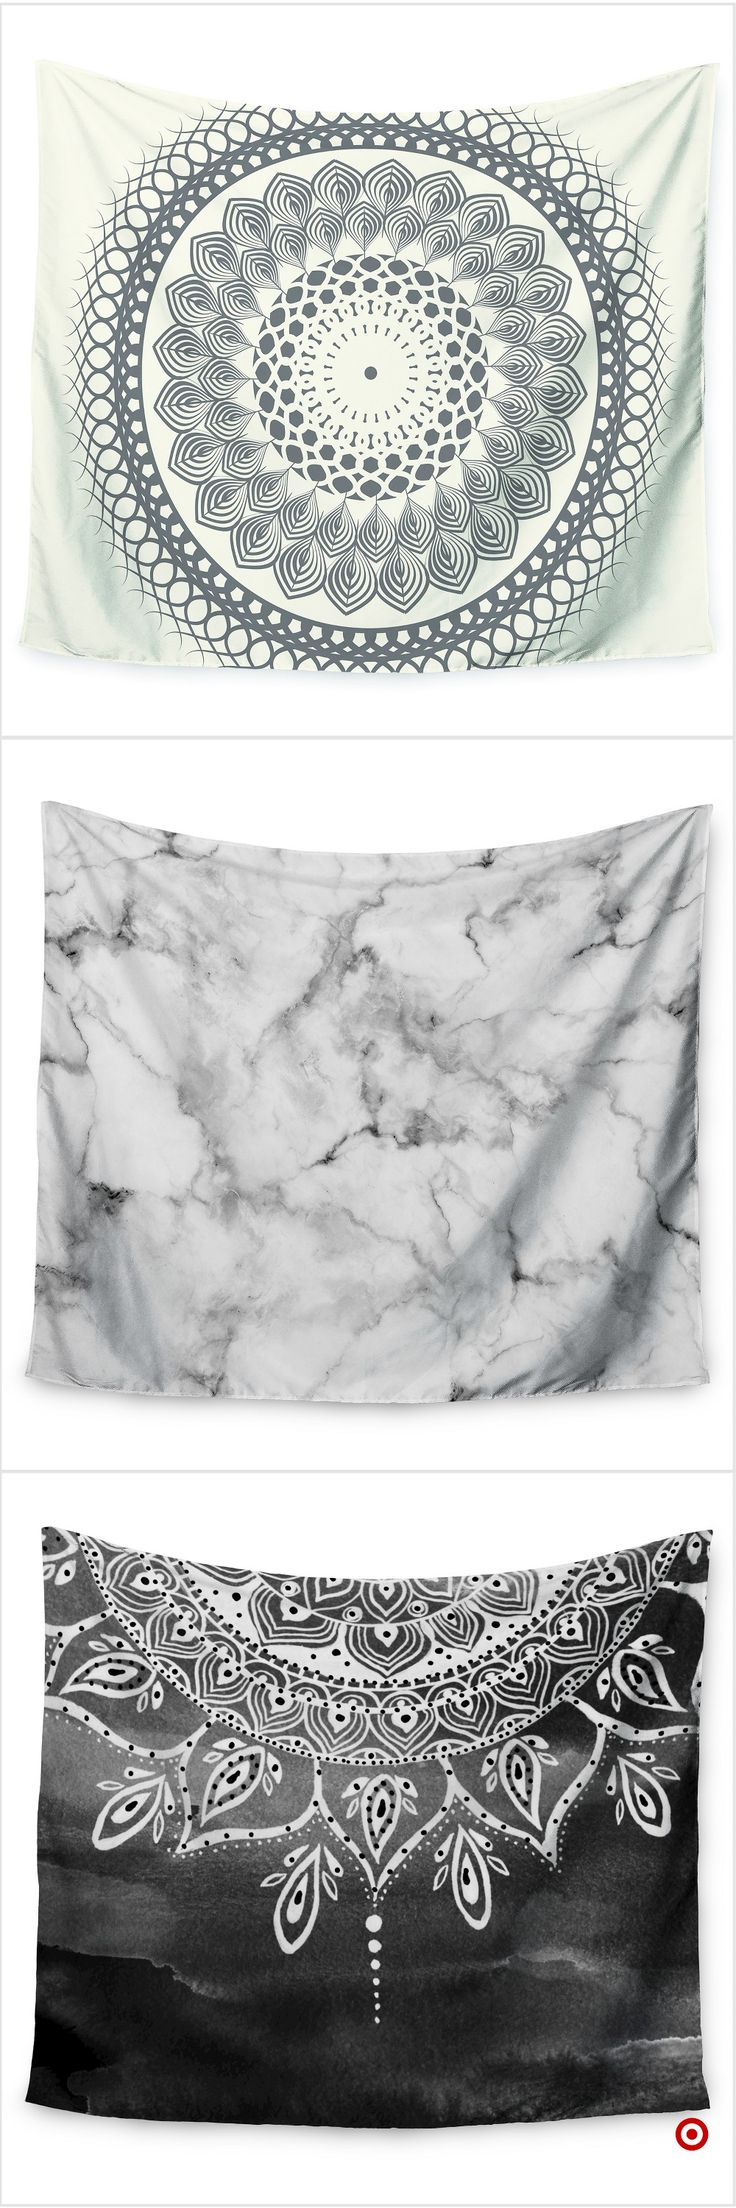 Shop Target for wall tapestries you will love at great low prices. Free shipping on orders of $35+ or free same-day pick-up in store.